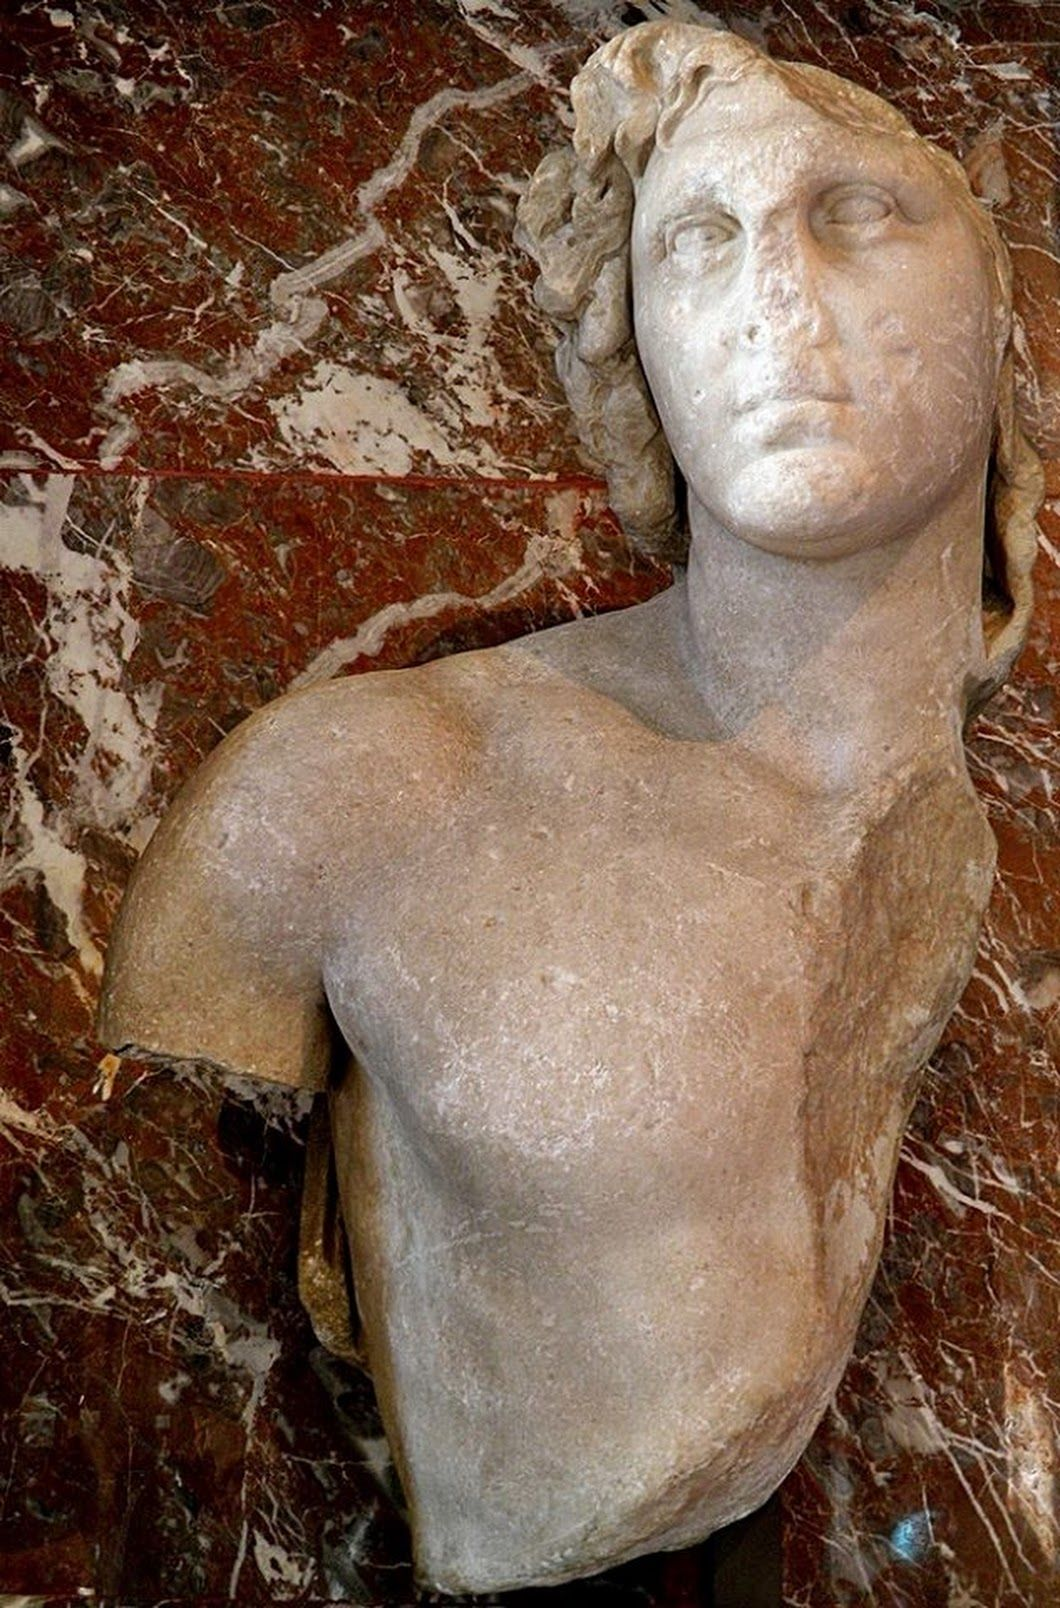 """Bust of Alexander the Great, known as the """"Inopos"""", from Delos, Louvre Museum  Circa 100 BC,Delos,Cycladic islands (Greece)  http://www.louvre.fr/en/oeu... - John Trikeriotis - Google+"""